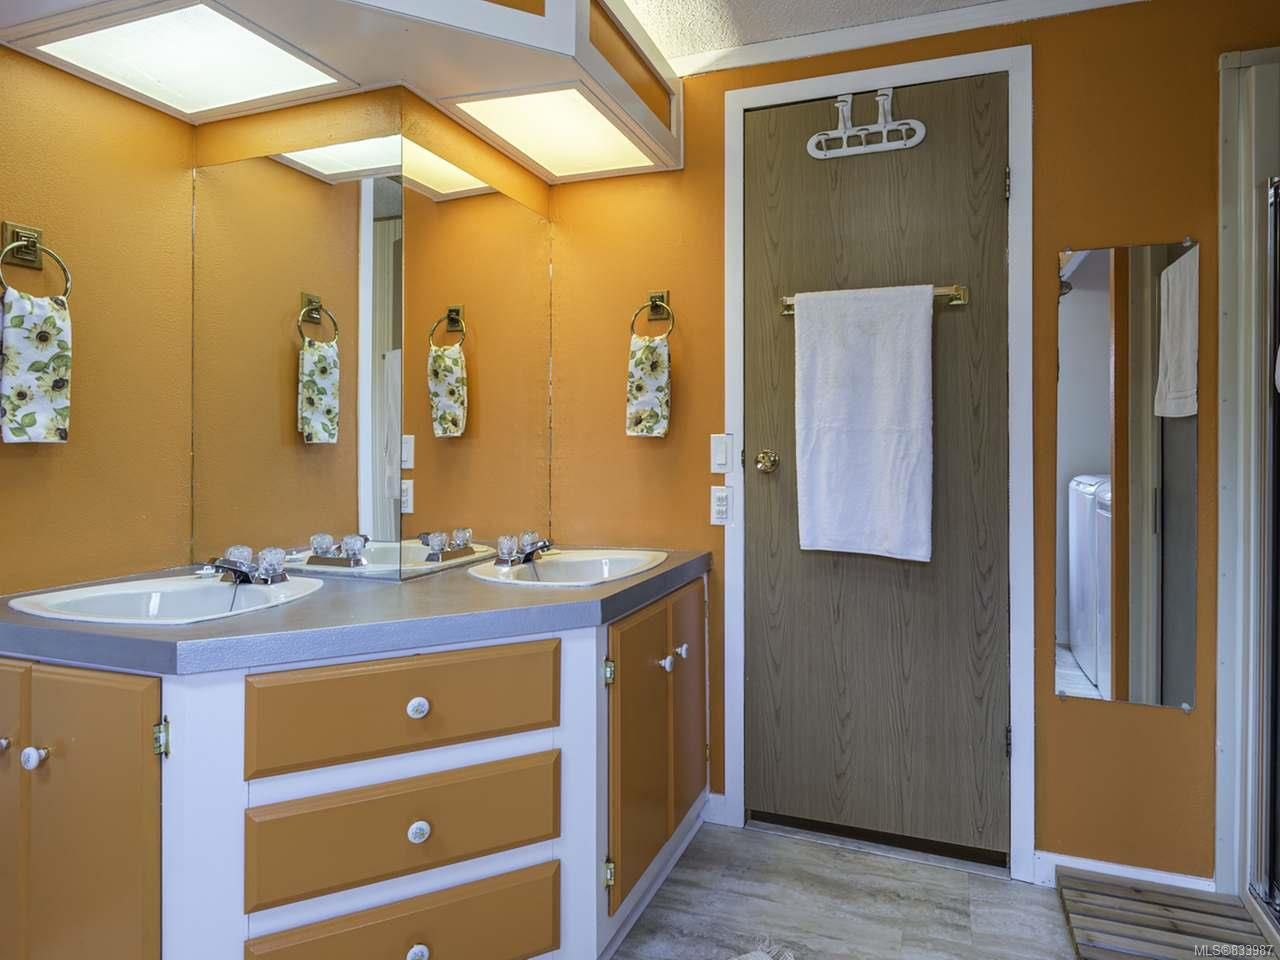 Photo 25: Photos: 64 390 Cowichan Ave in COURTENAY: CV Courtenay East Manufactured Home for sale (Comox Valley)  : MLS®# 833987